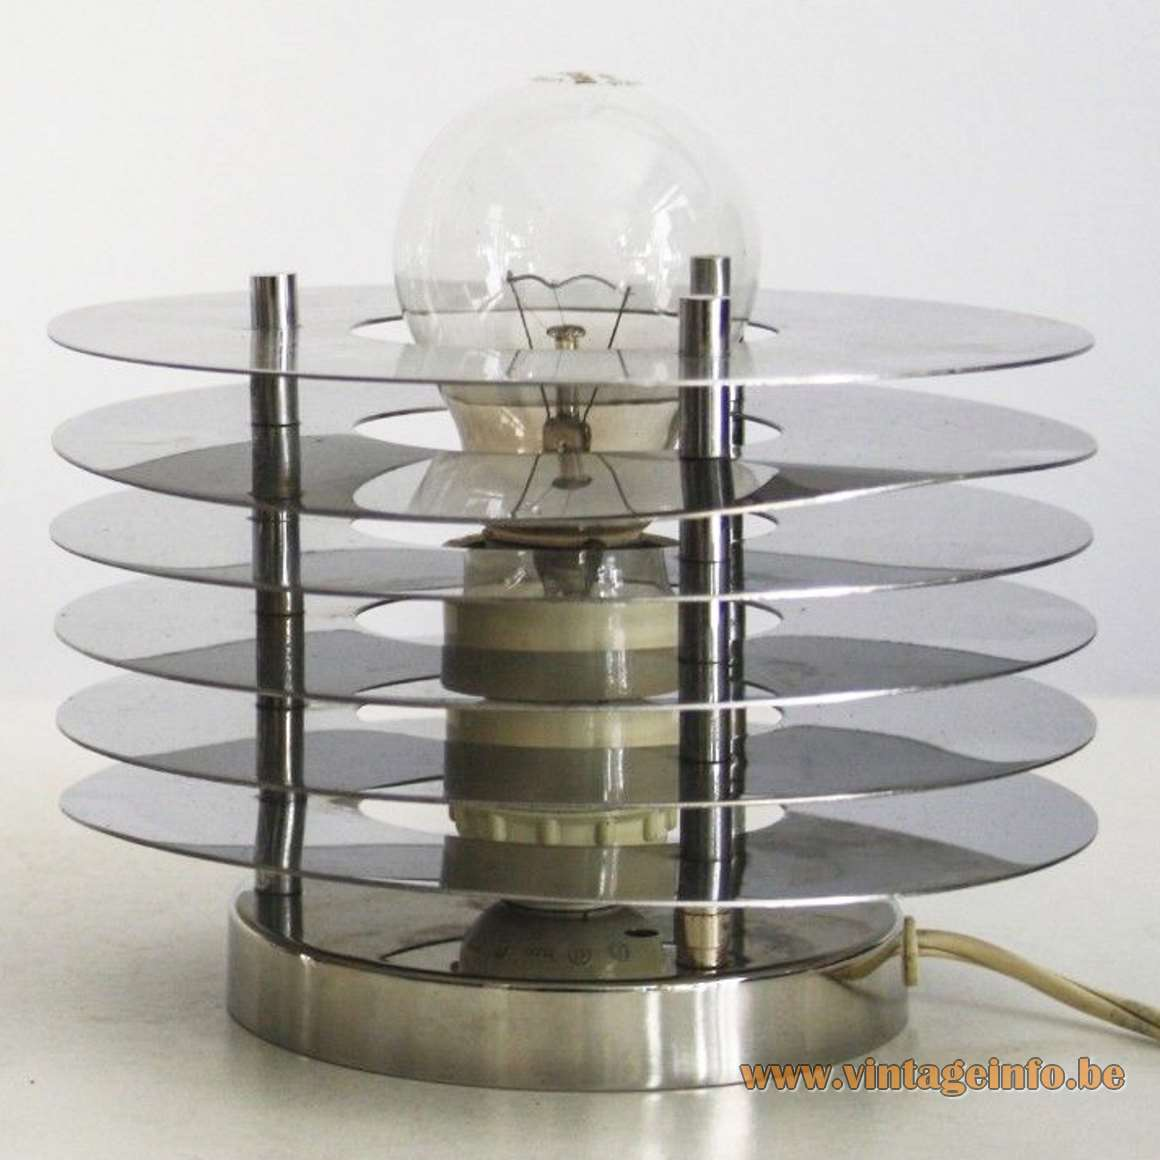 Reggiani Italy 1960s/1970s chrome Saturn wall lamp or flush mount